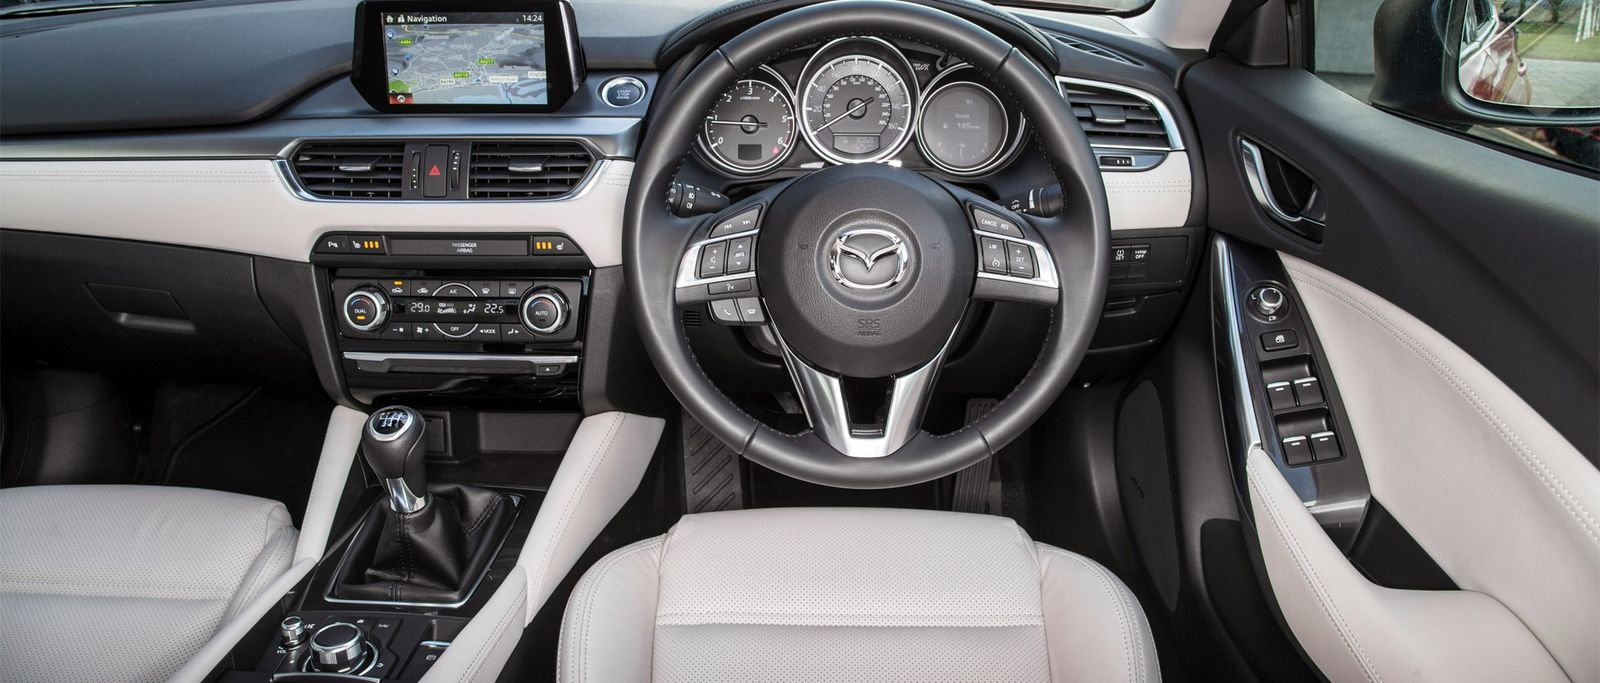 glamorous 2017 mazda 3 interior colors images simple design home